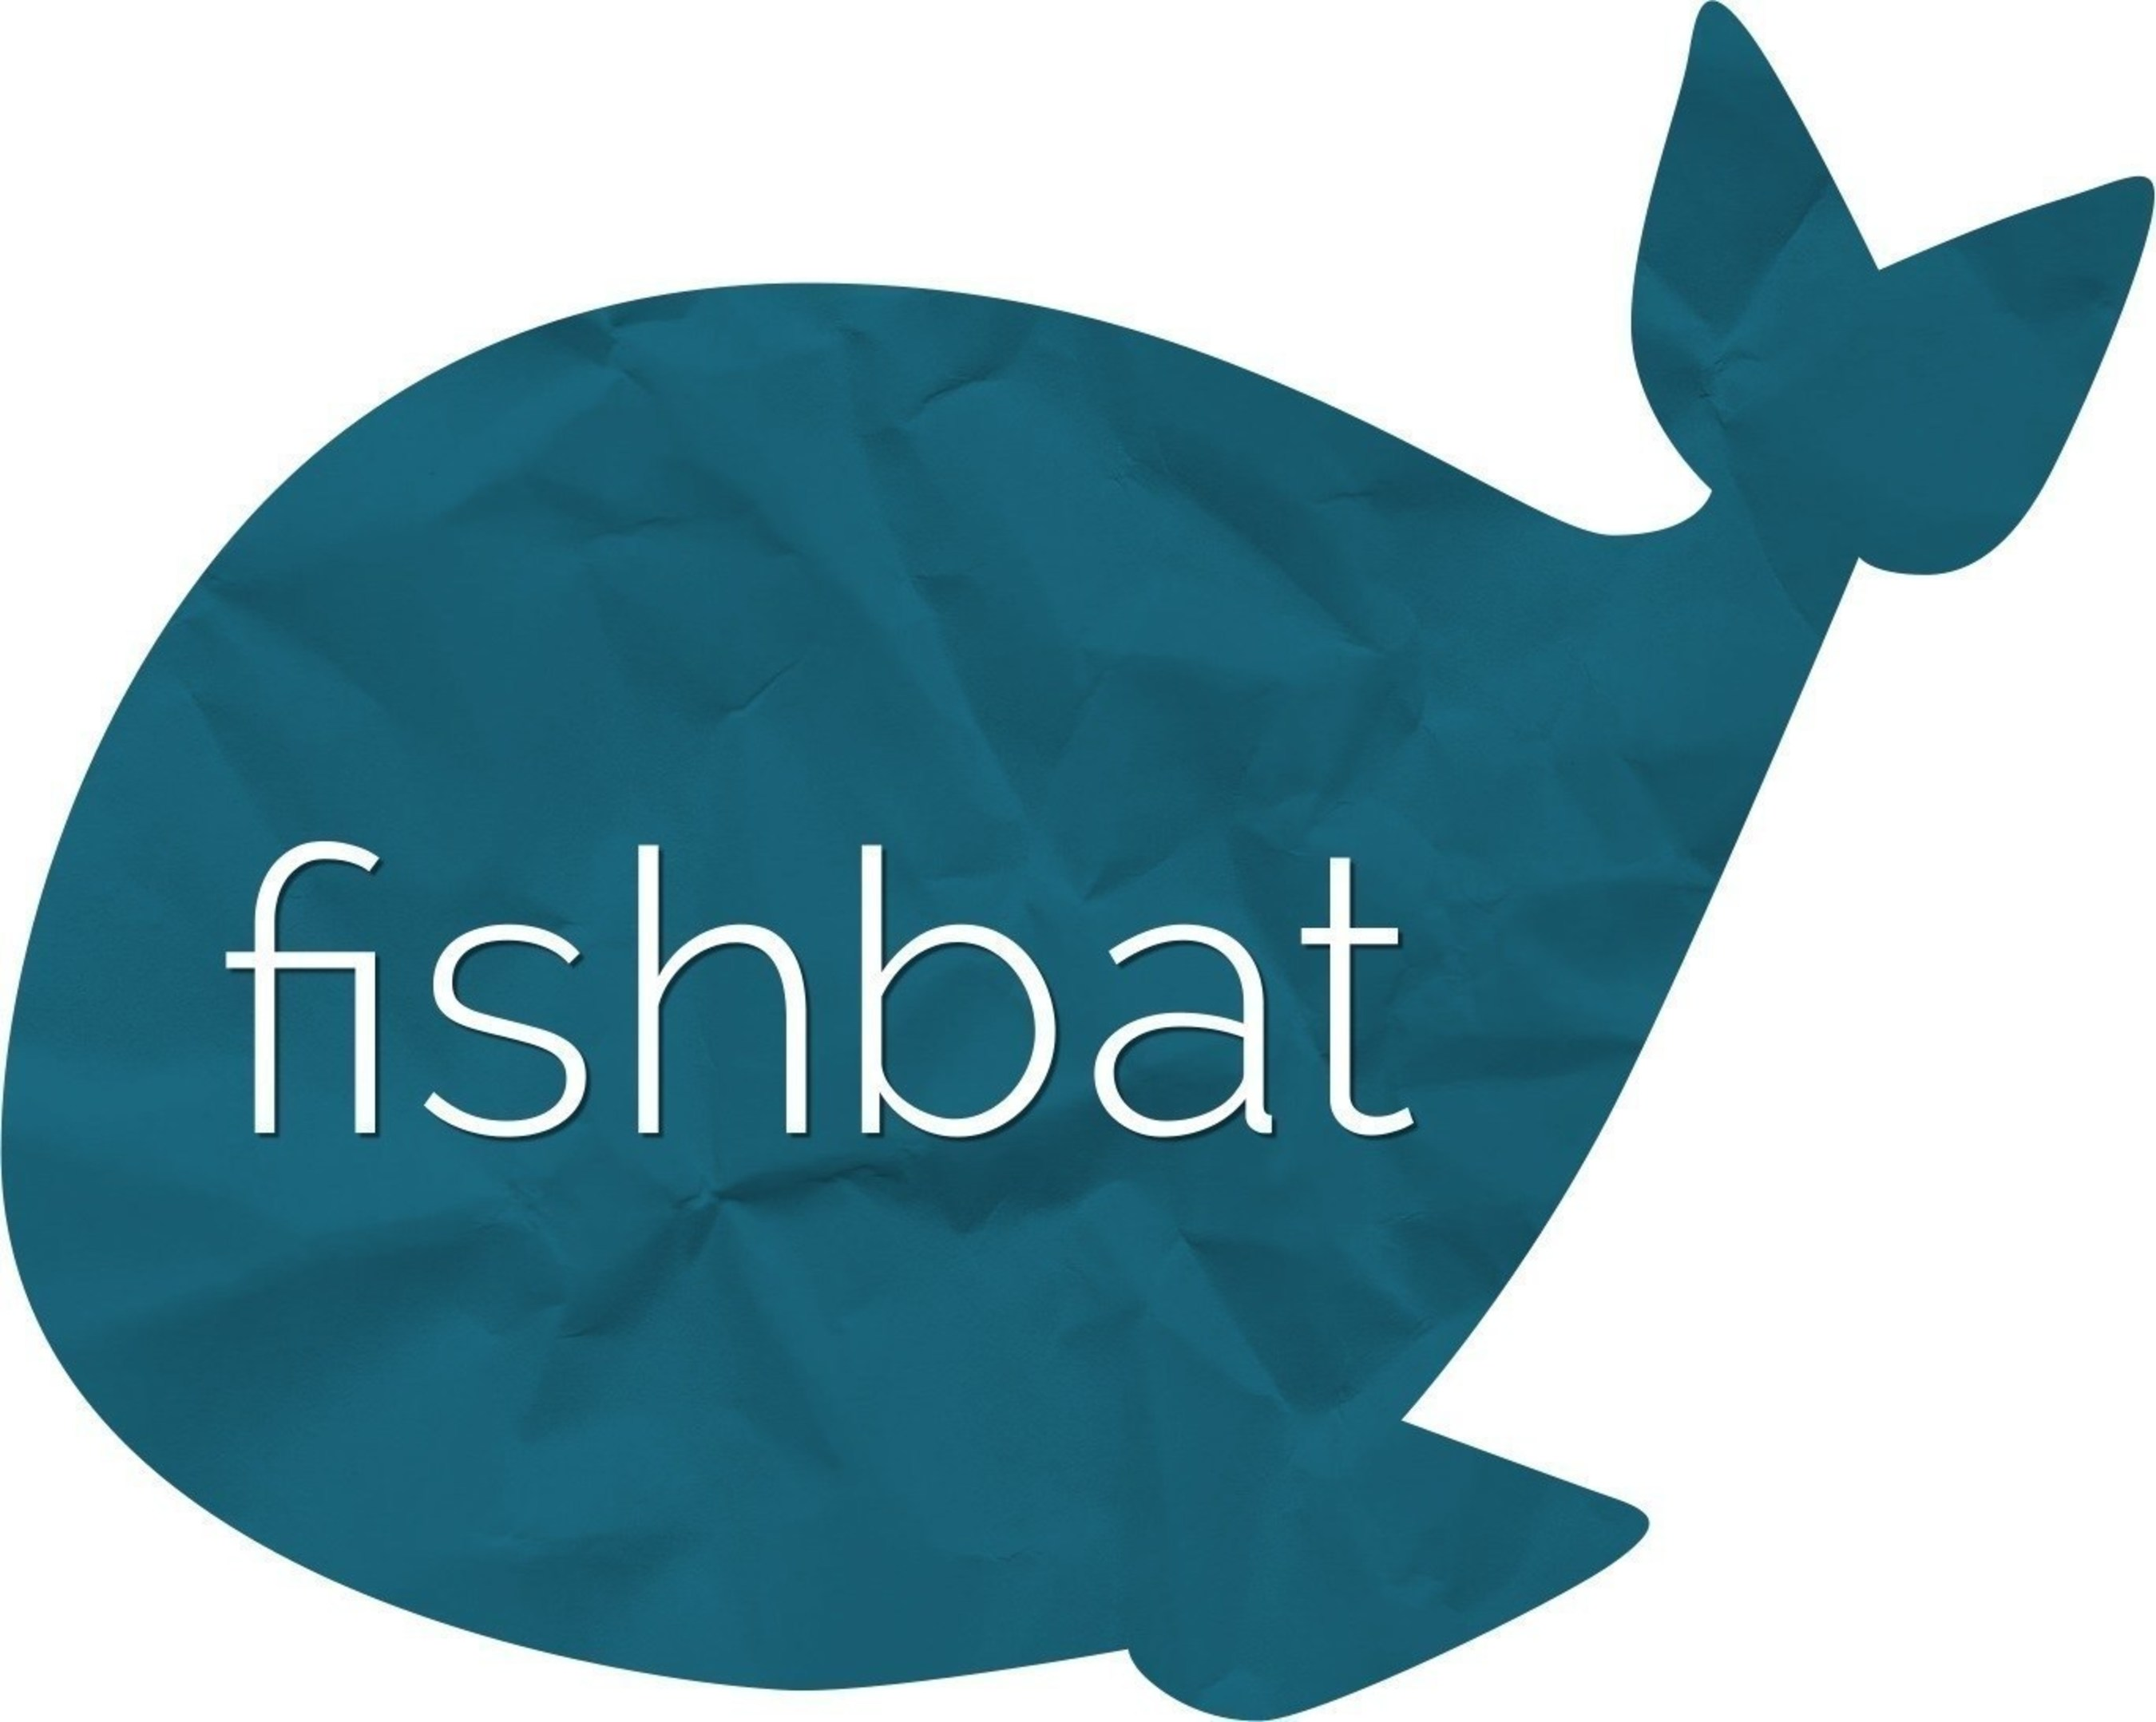 Internet Marketing Company, fishbat, Talks About Using Klout to Optimize Your Social Media Growth